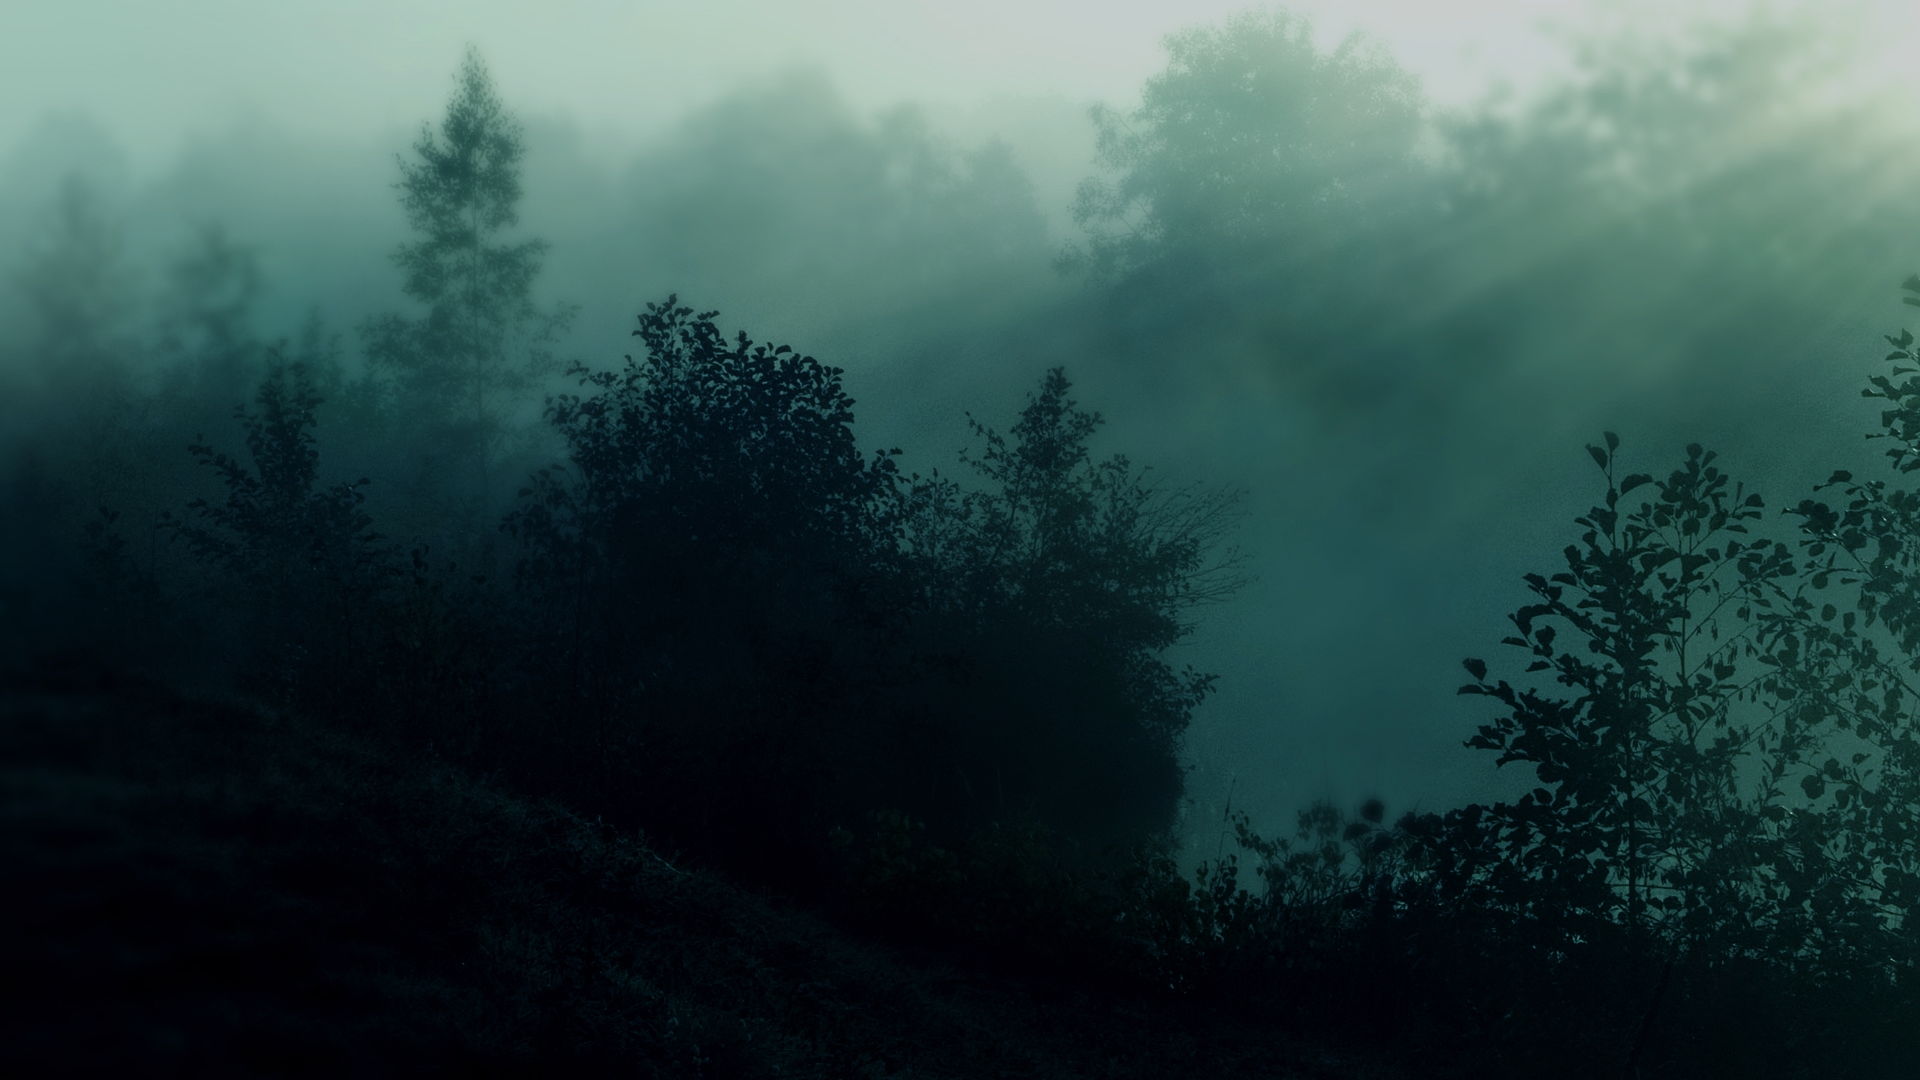 Download Wallpaper Nature Trees Dark Forest Mist Sunlight 1920x1080 Hd Wallpaper On Turnlol Hd Wallpaper 1920 Foggy Forest Forest Wallpaper Nature Wallpaper